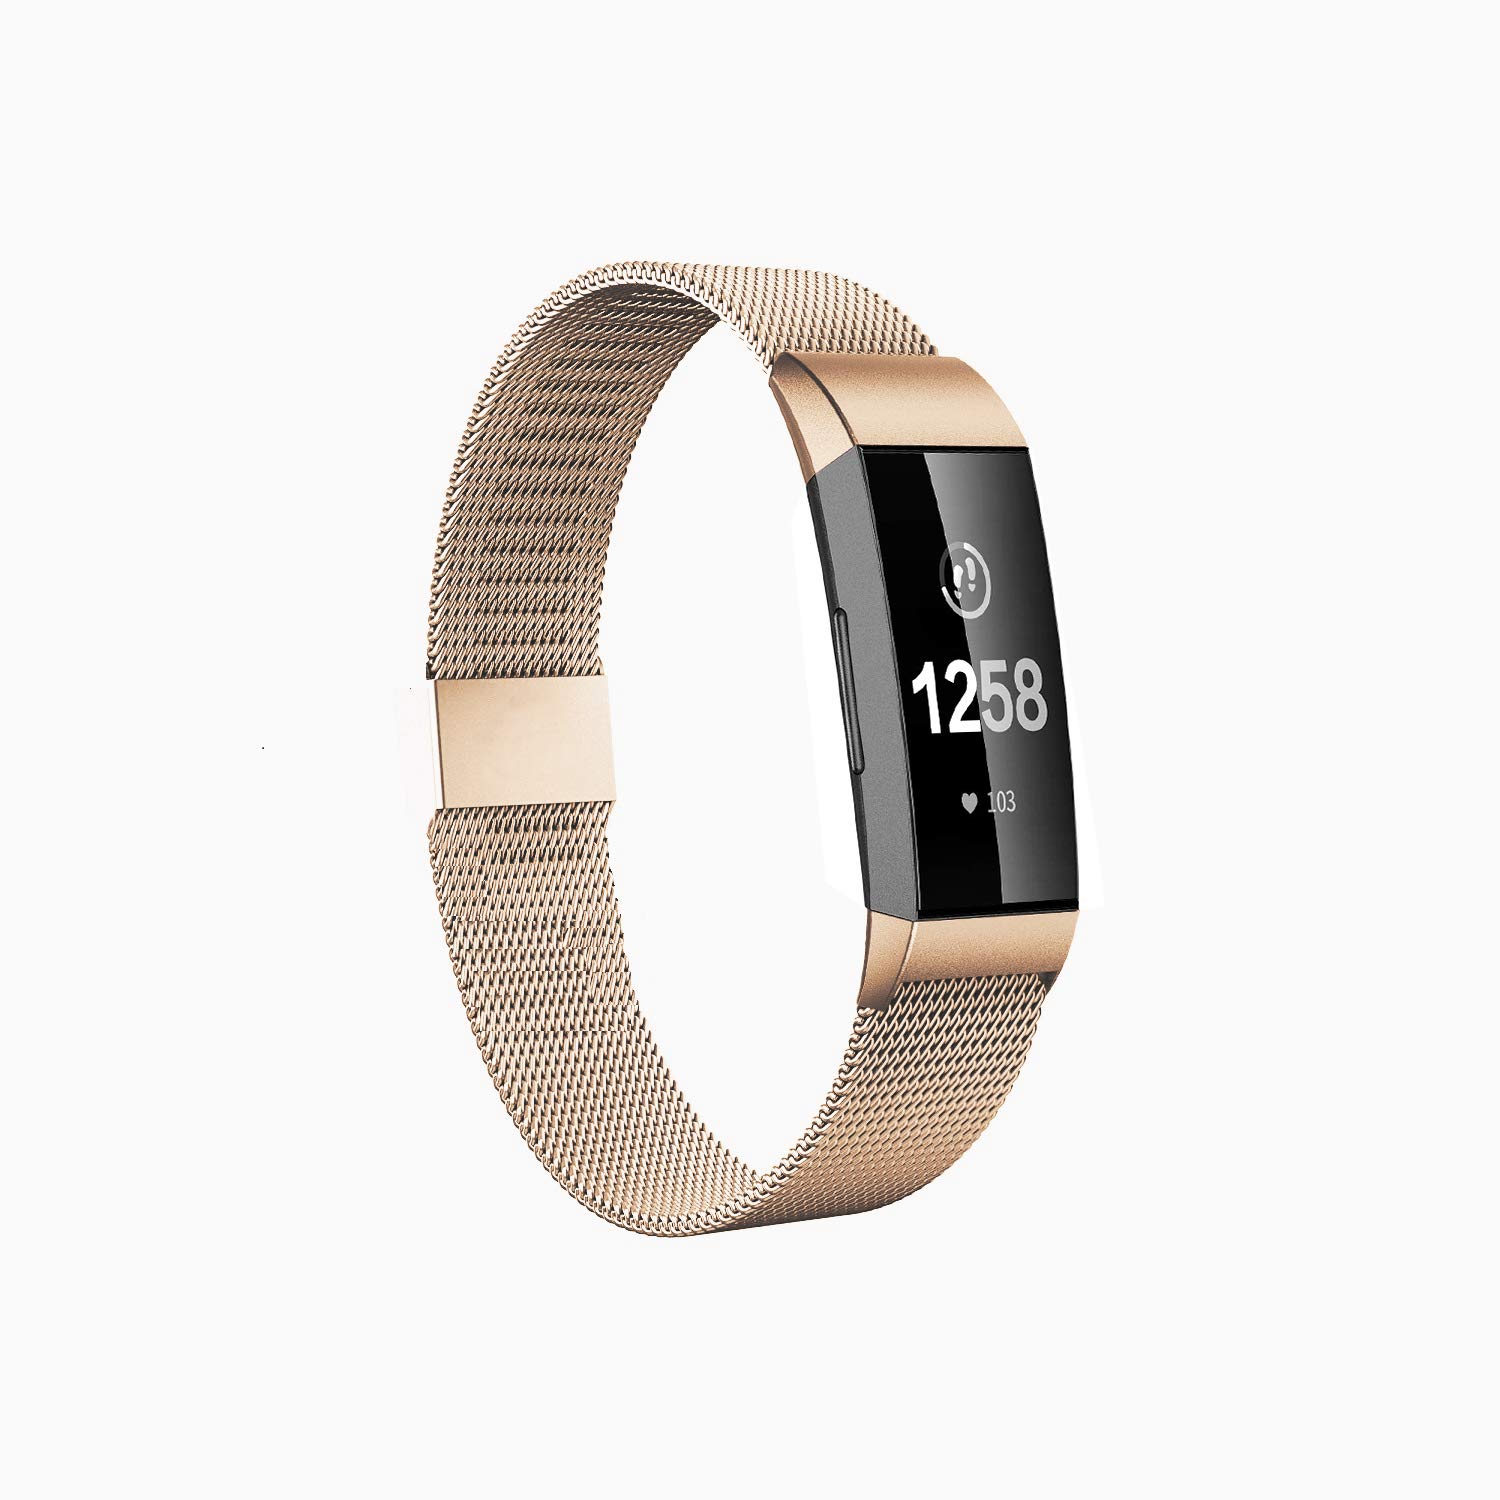 Fitlink Stainless Steel Bands Replacement for Charge 3 and Charge 3 SE for Women Men,Multi Color Multi Size (Champagne Gold, Small(5.5''-8.5''))